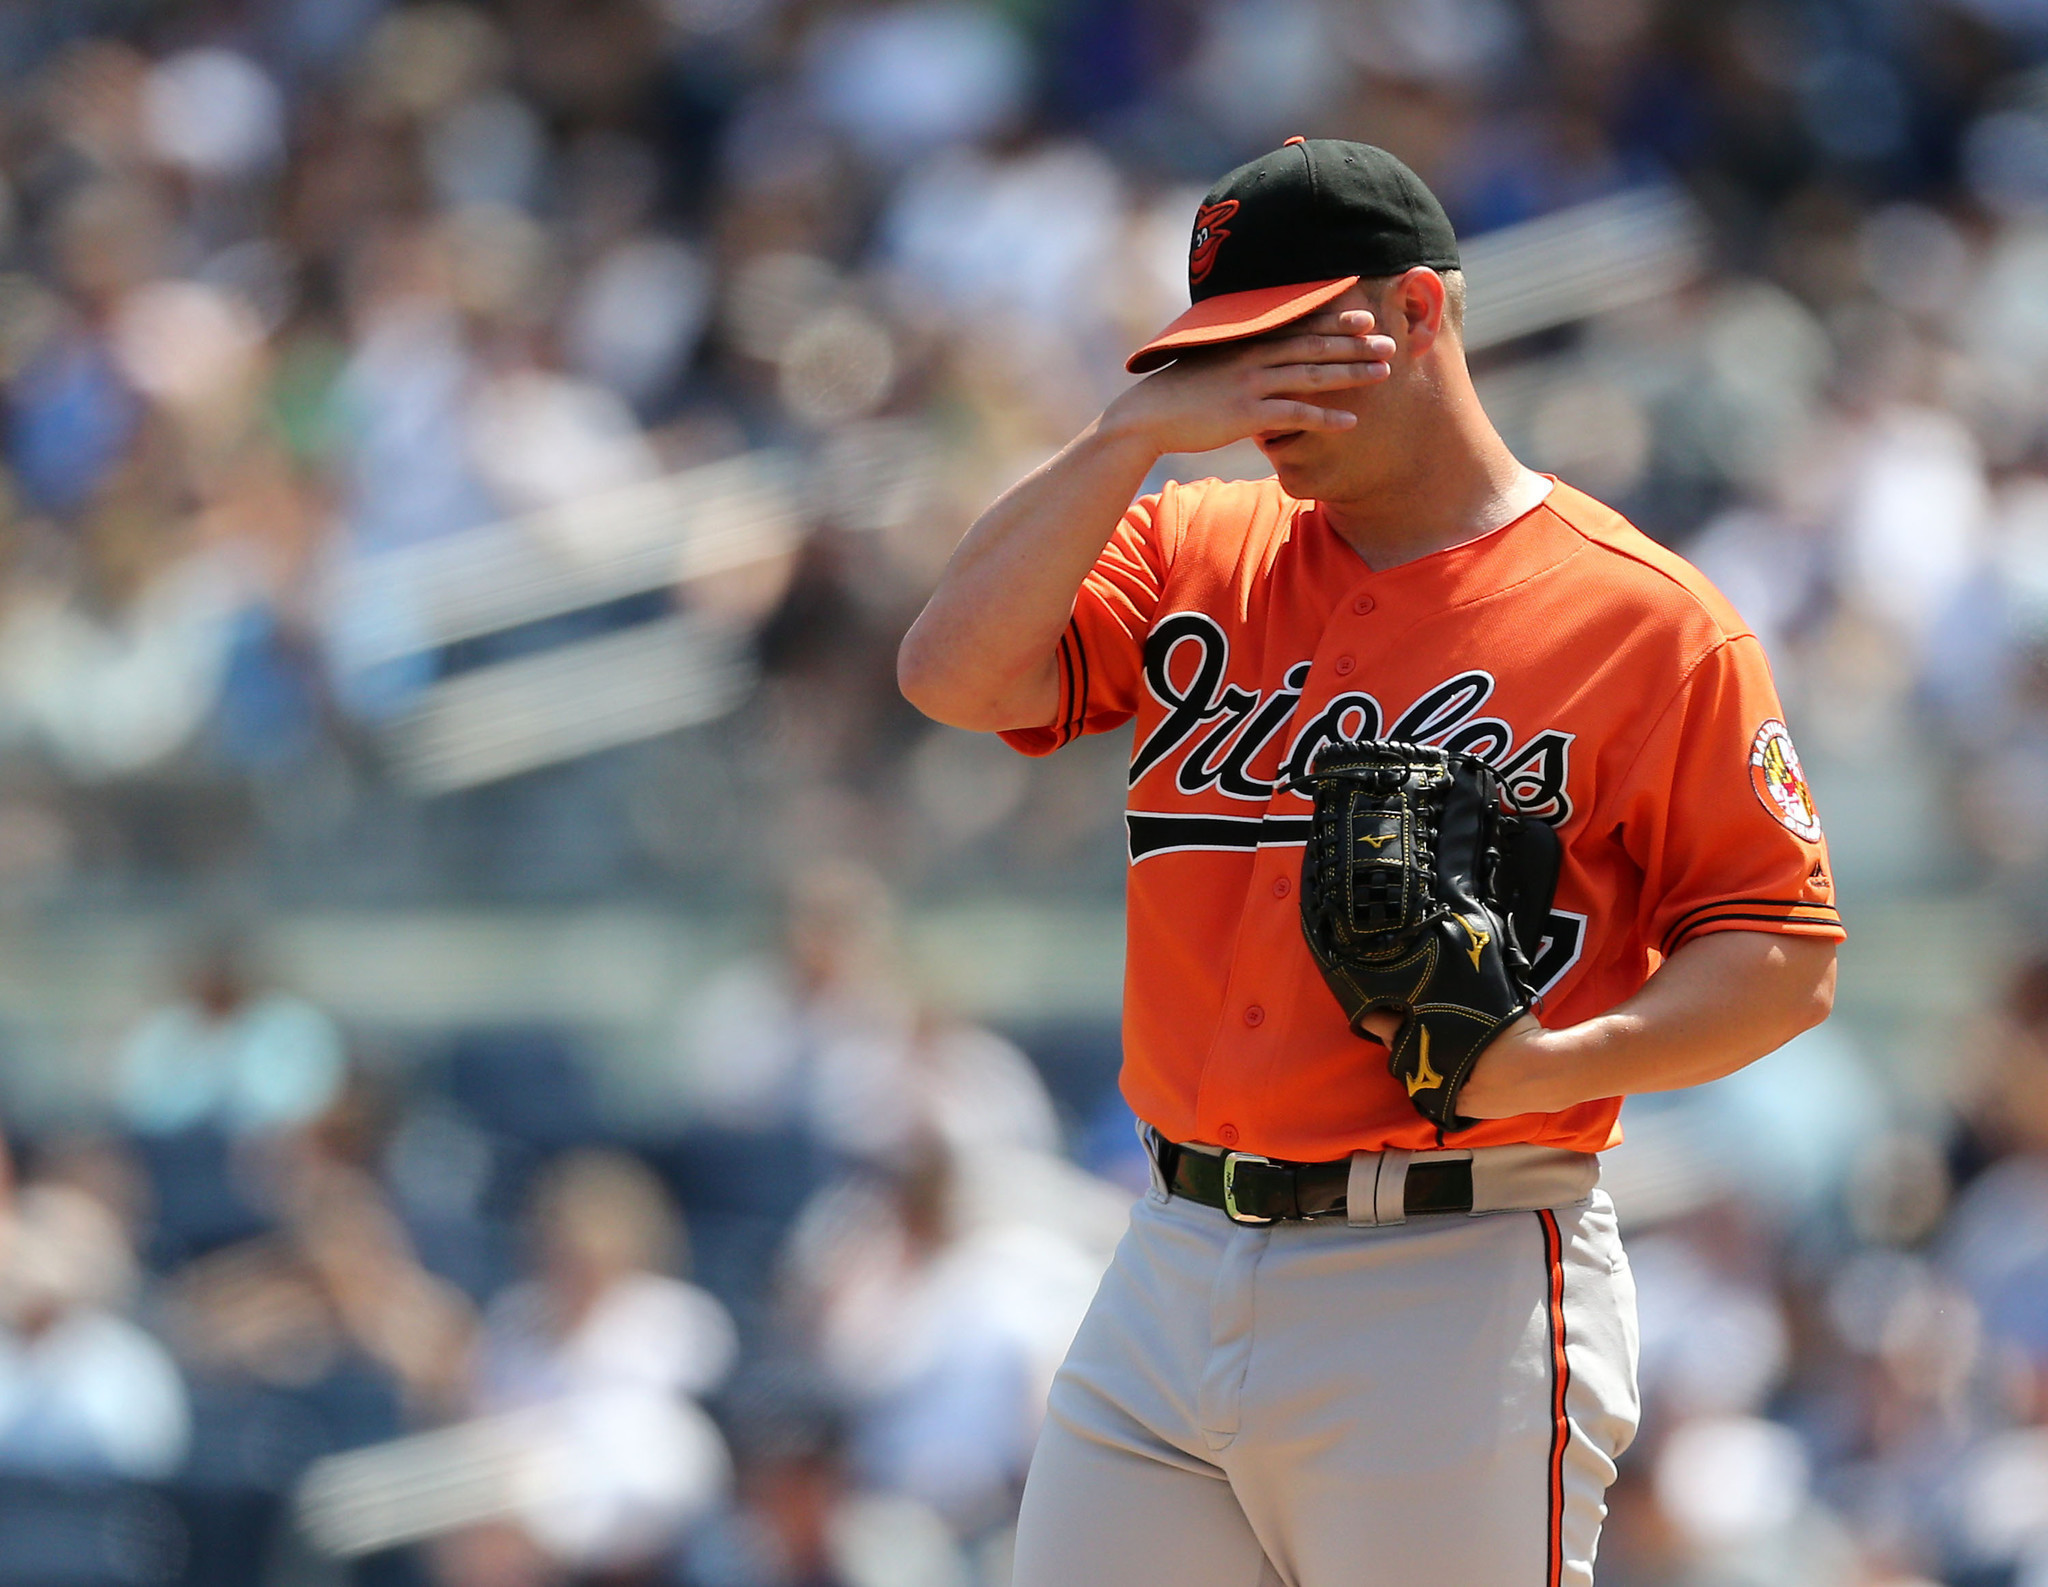 Bal-orioles-recap-birds-blasted-again-by-yankees-13-5-to-fall-three-games-out-of-first-place-20160827